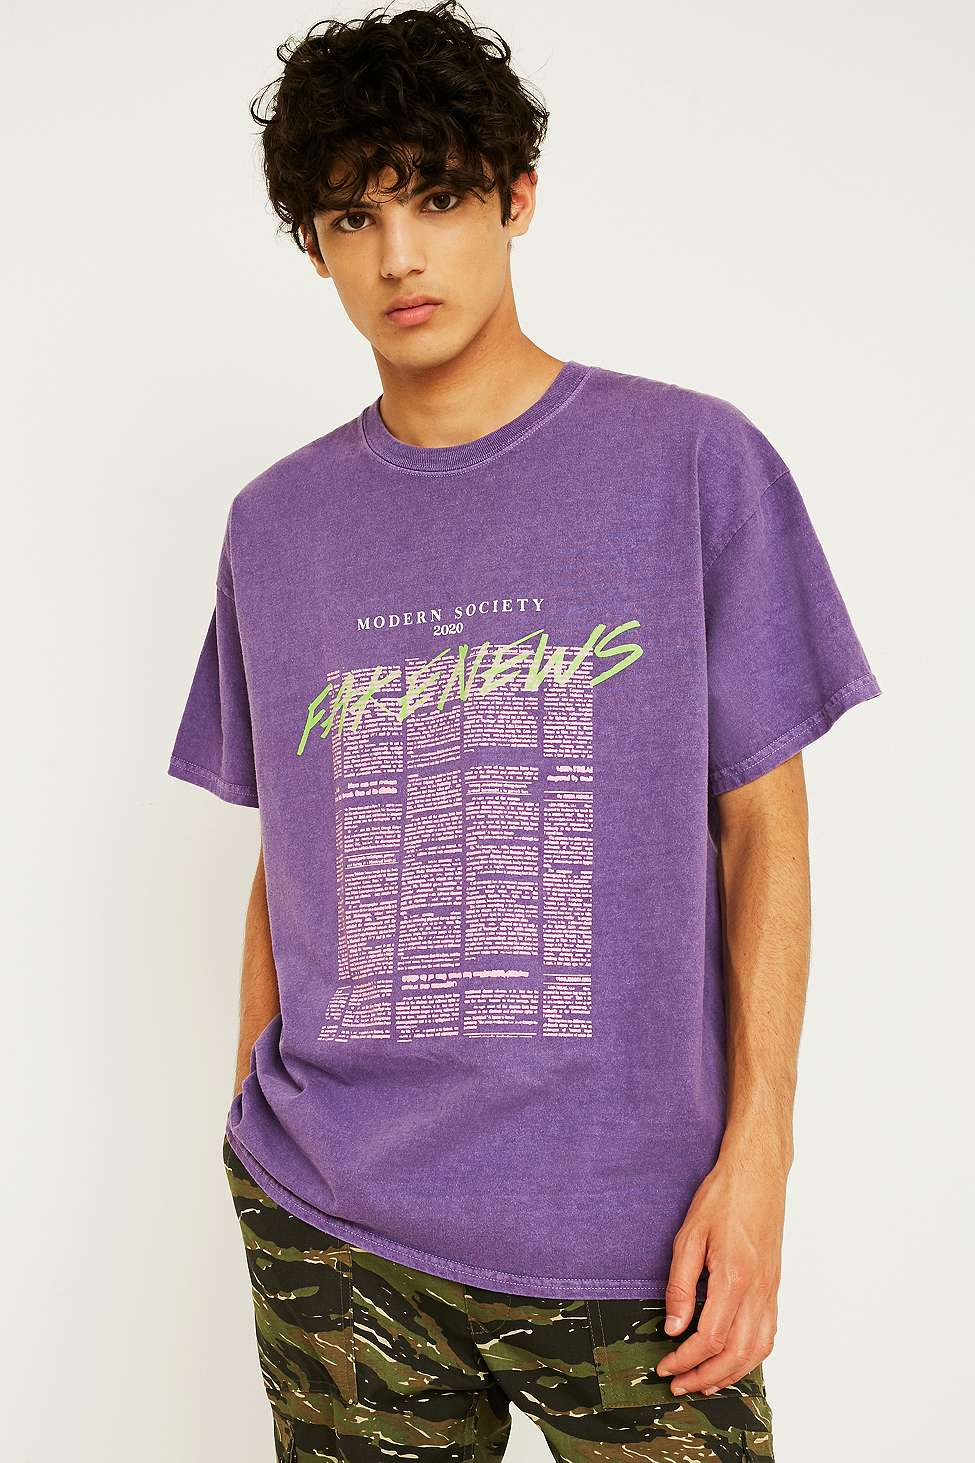 Urban Outfitters UO Fake News Purple T-Shirt